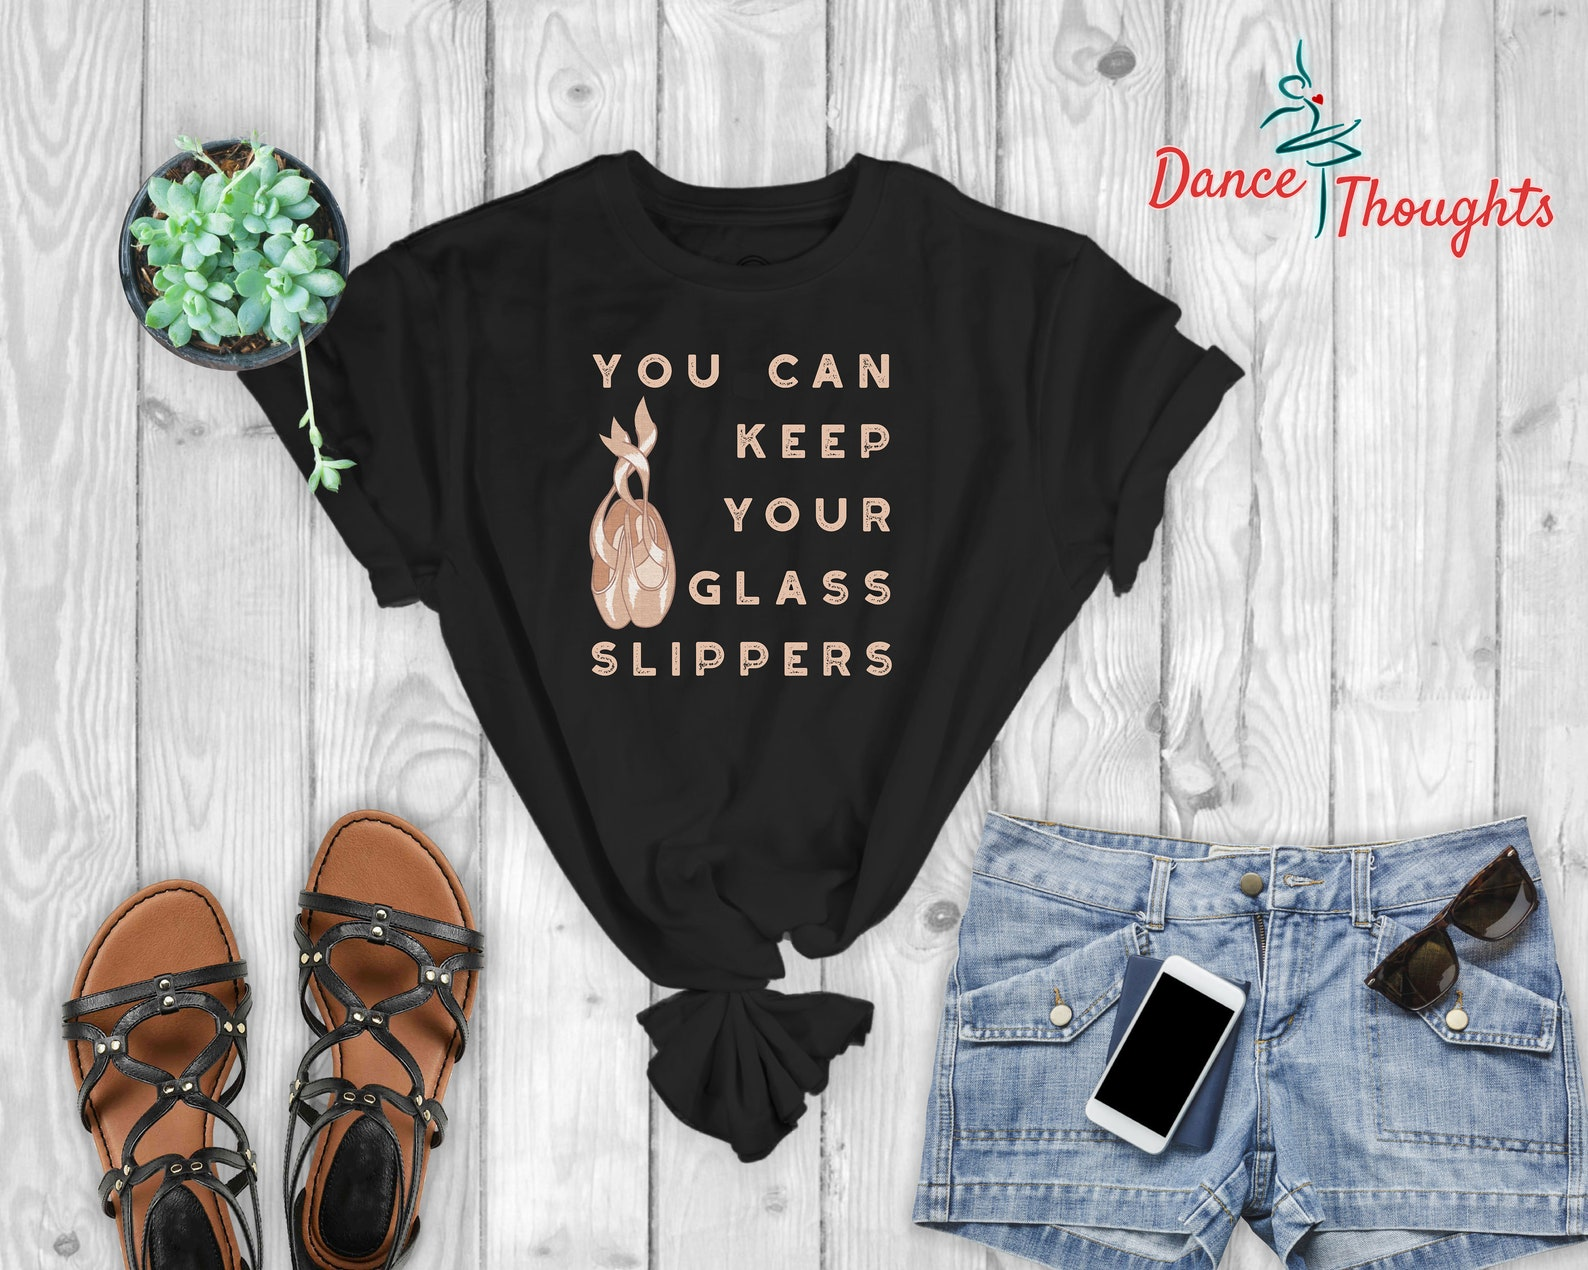 ballet dance pointe shoe shirt recital gift - you can keep your glass slippers